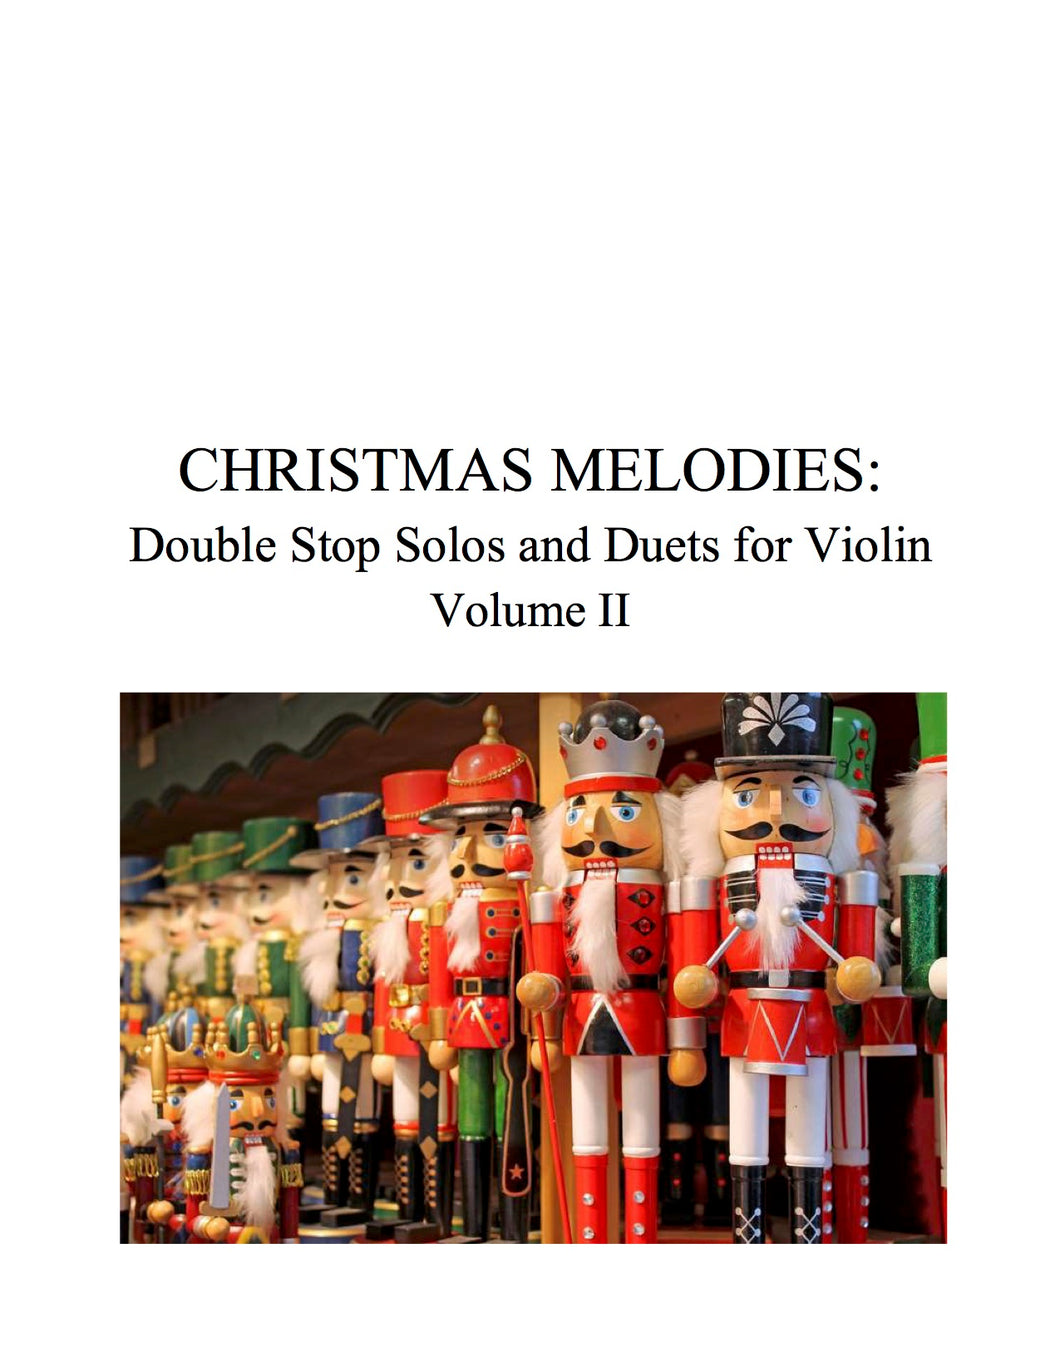 034 - Christmas Melodies: Double Stop Solos and Duets For Violin, Volume II